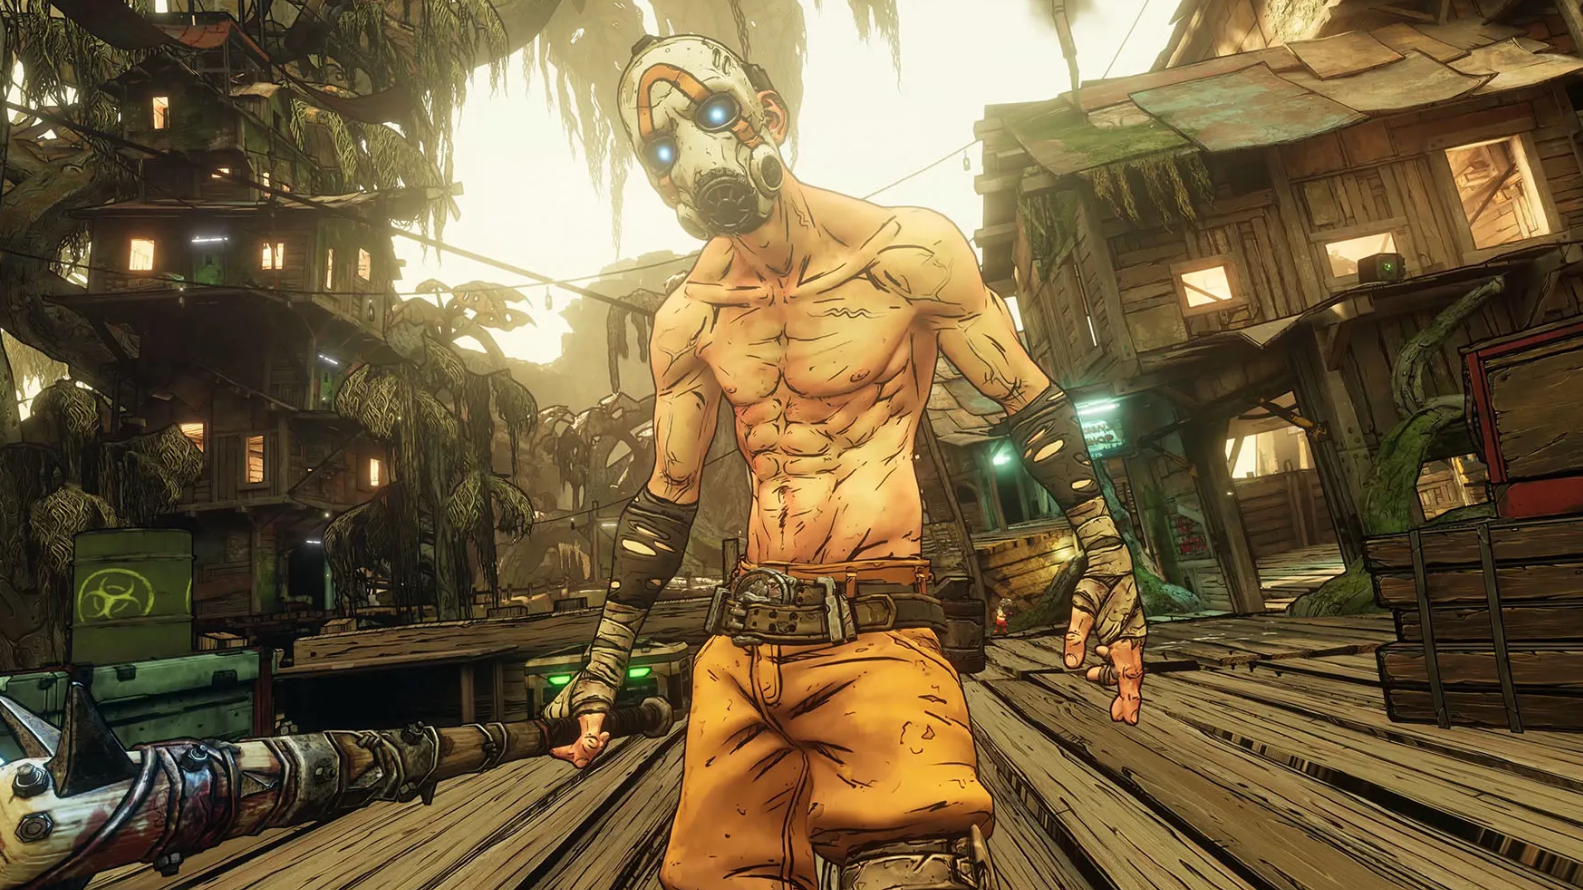 Borderlands 3 Developers Fix Nasty Bug That Erased People's Save Files (Although It's Too Late For Them)